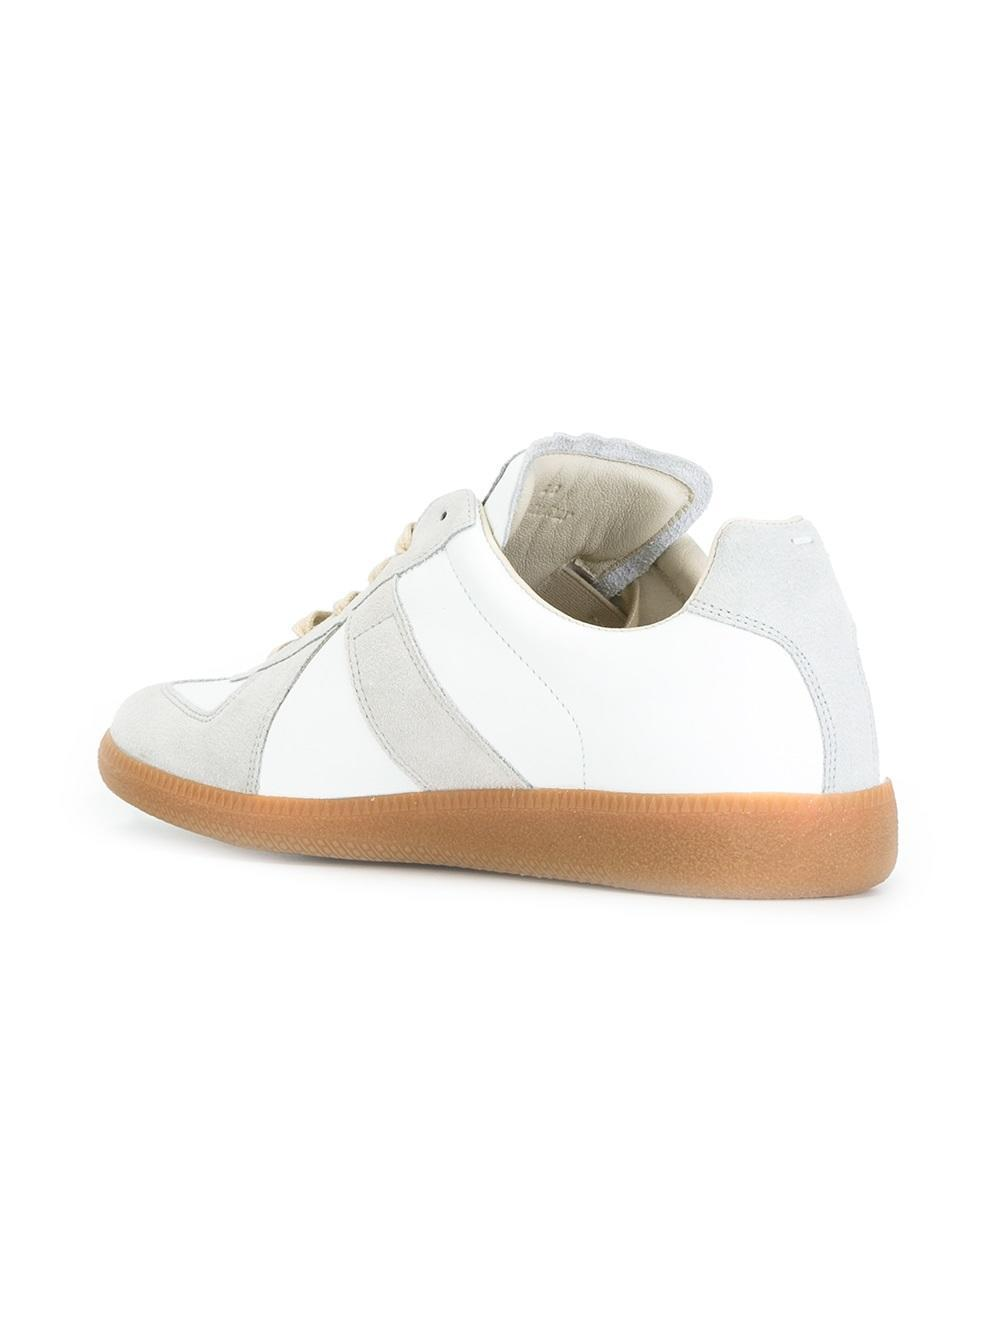 Maison margiela replica sneakers for men lyst for Maison de margiela